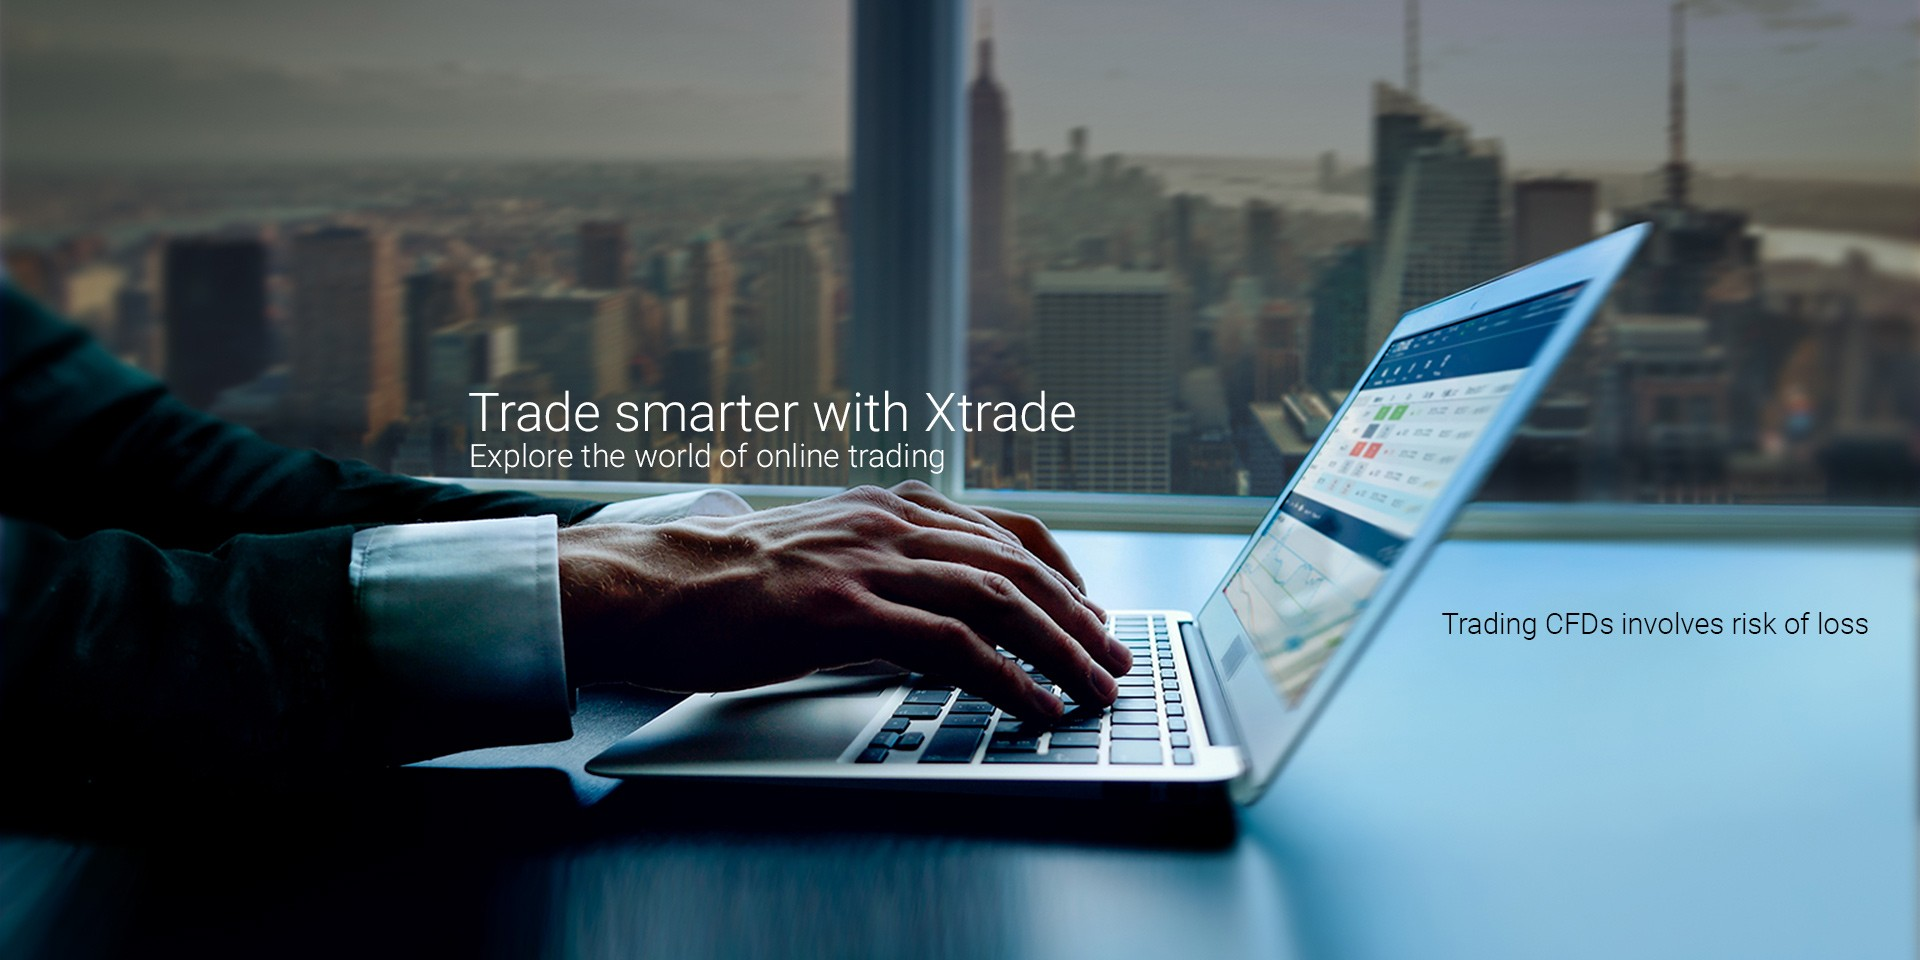 How to choose a right online trading broker for you trading needs?